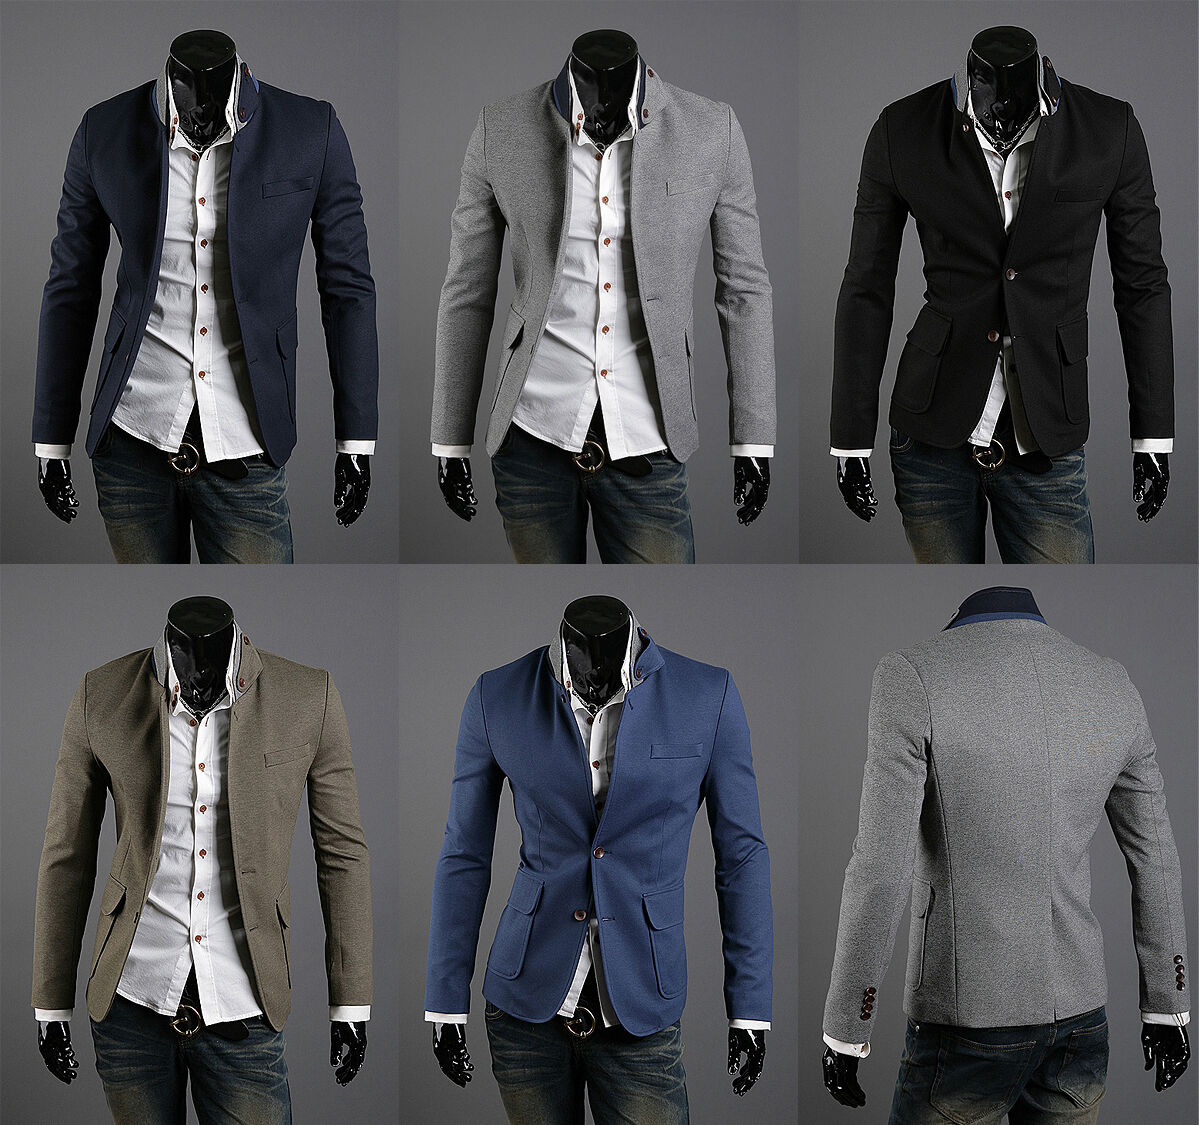 korea_top mens blazer jackets korean fashion two button coat slim suit XS S M L